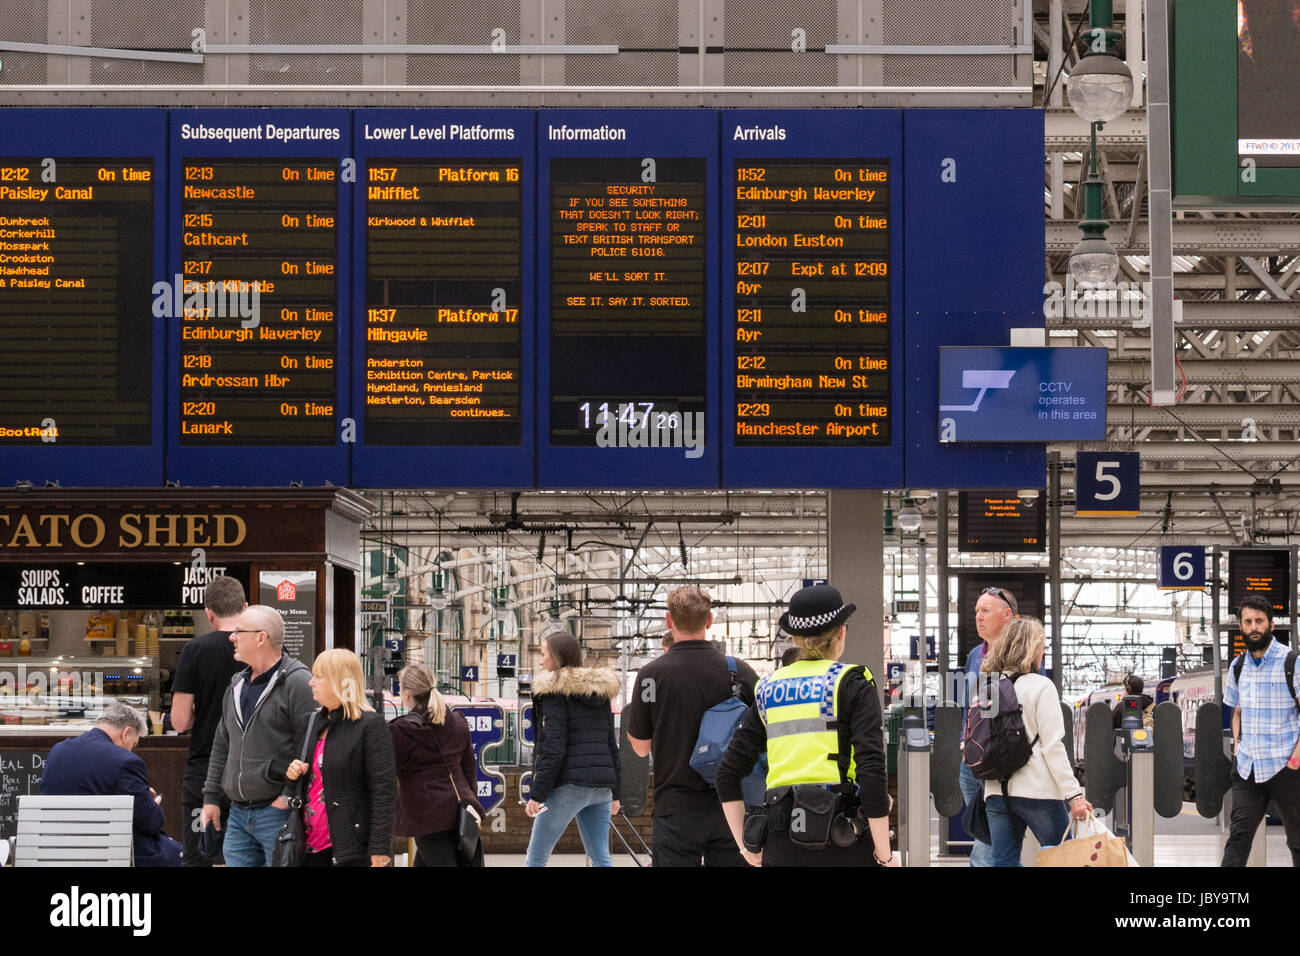 National Rail Security Campaign on Glasgow Central Station information board - See it, Say it, Sorted - Stock Image